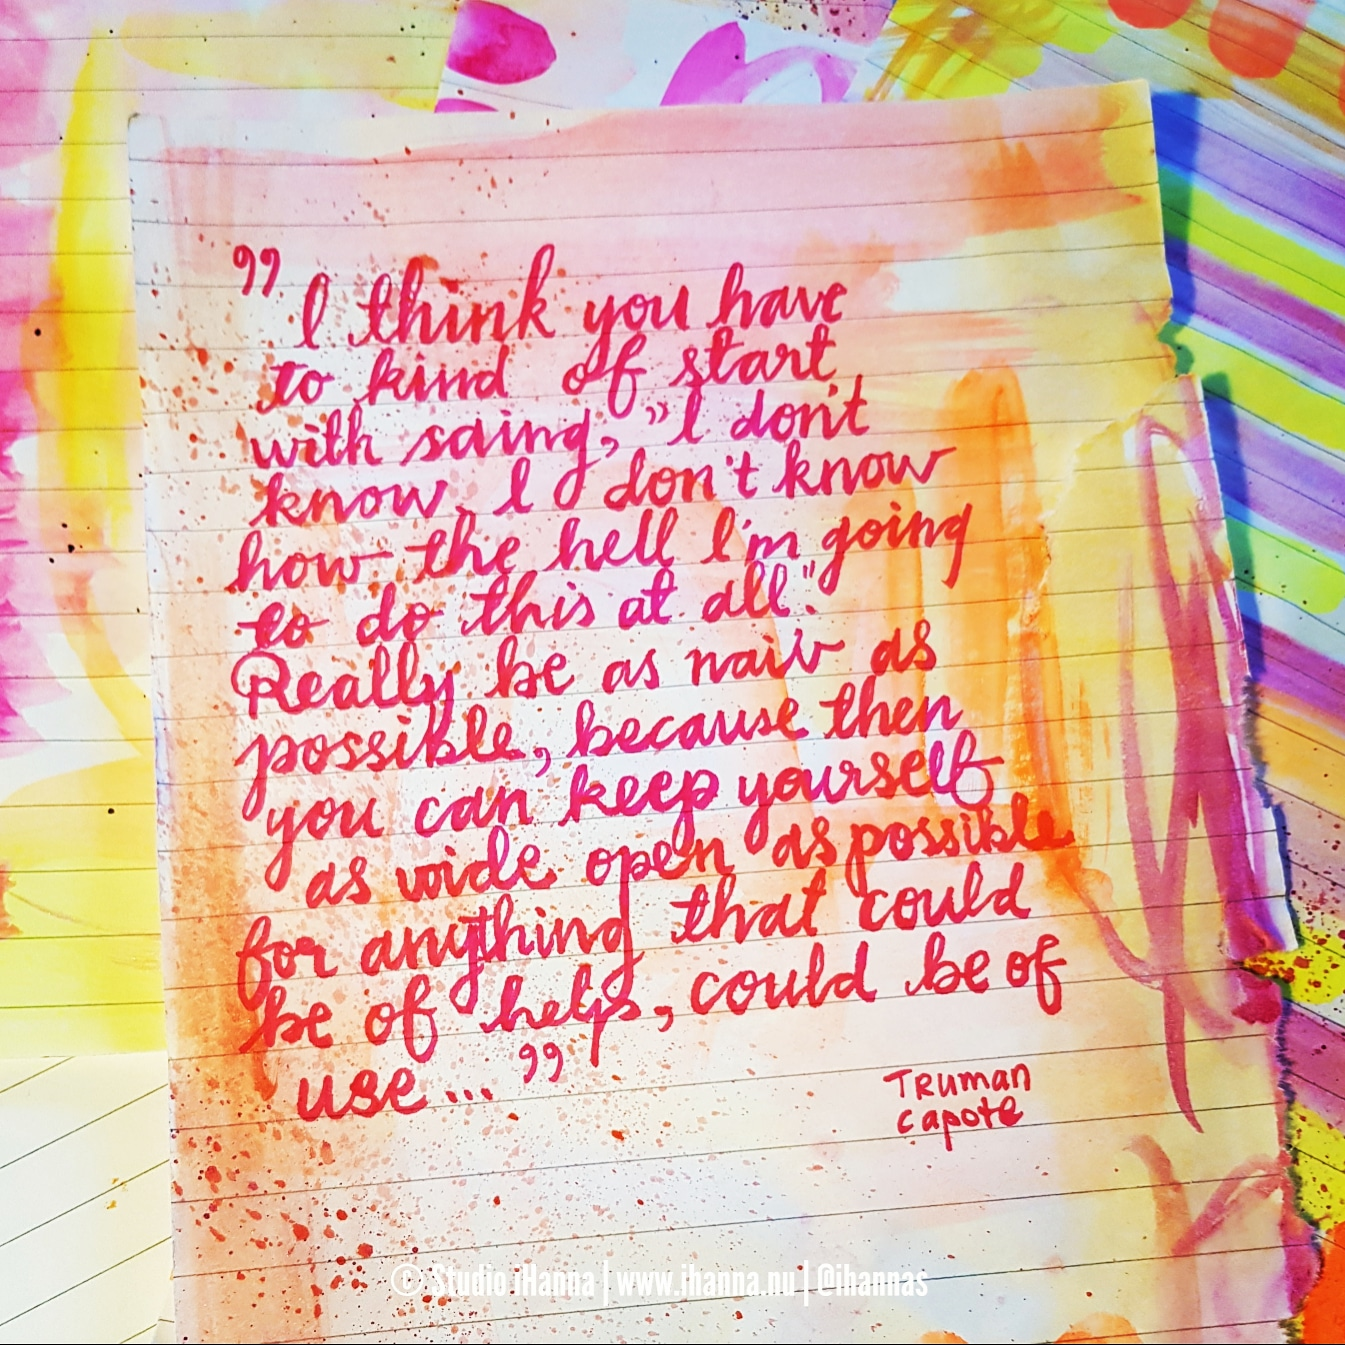 I don't know Truman Capote quote handwritten by iHanna